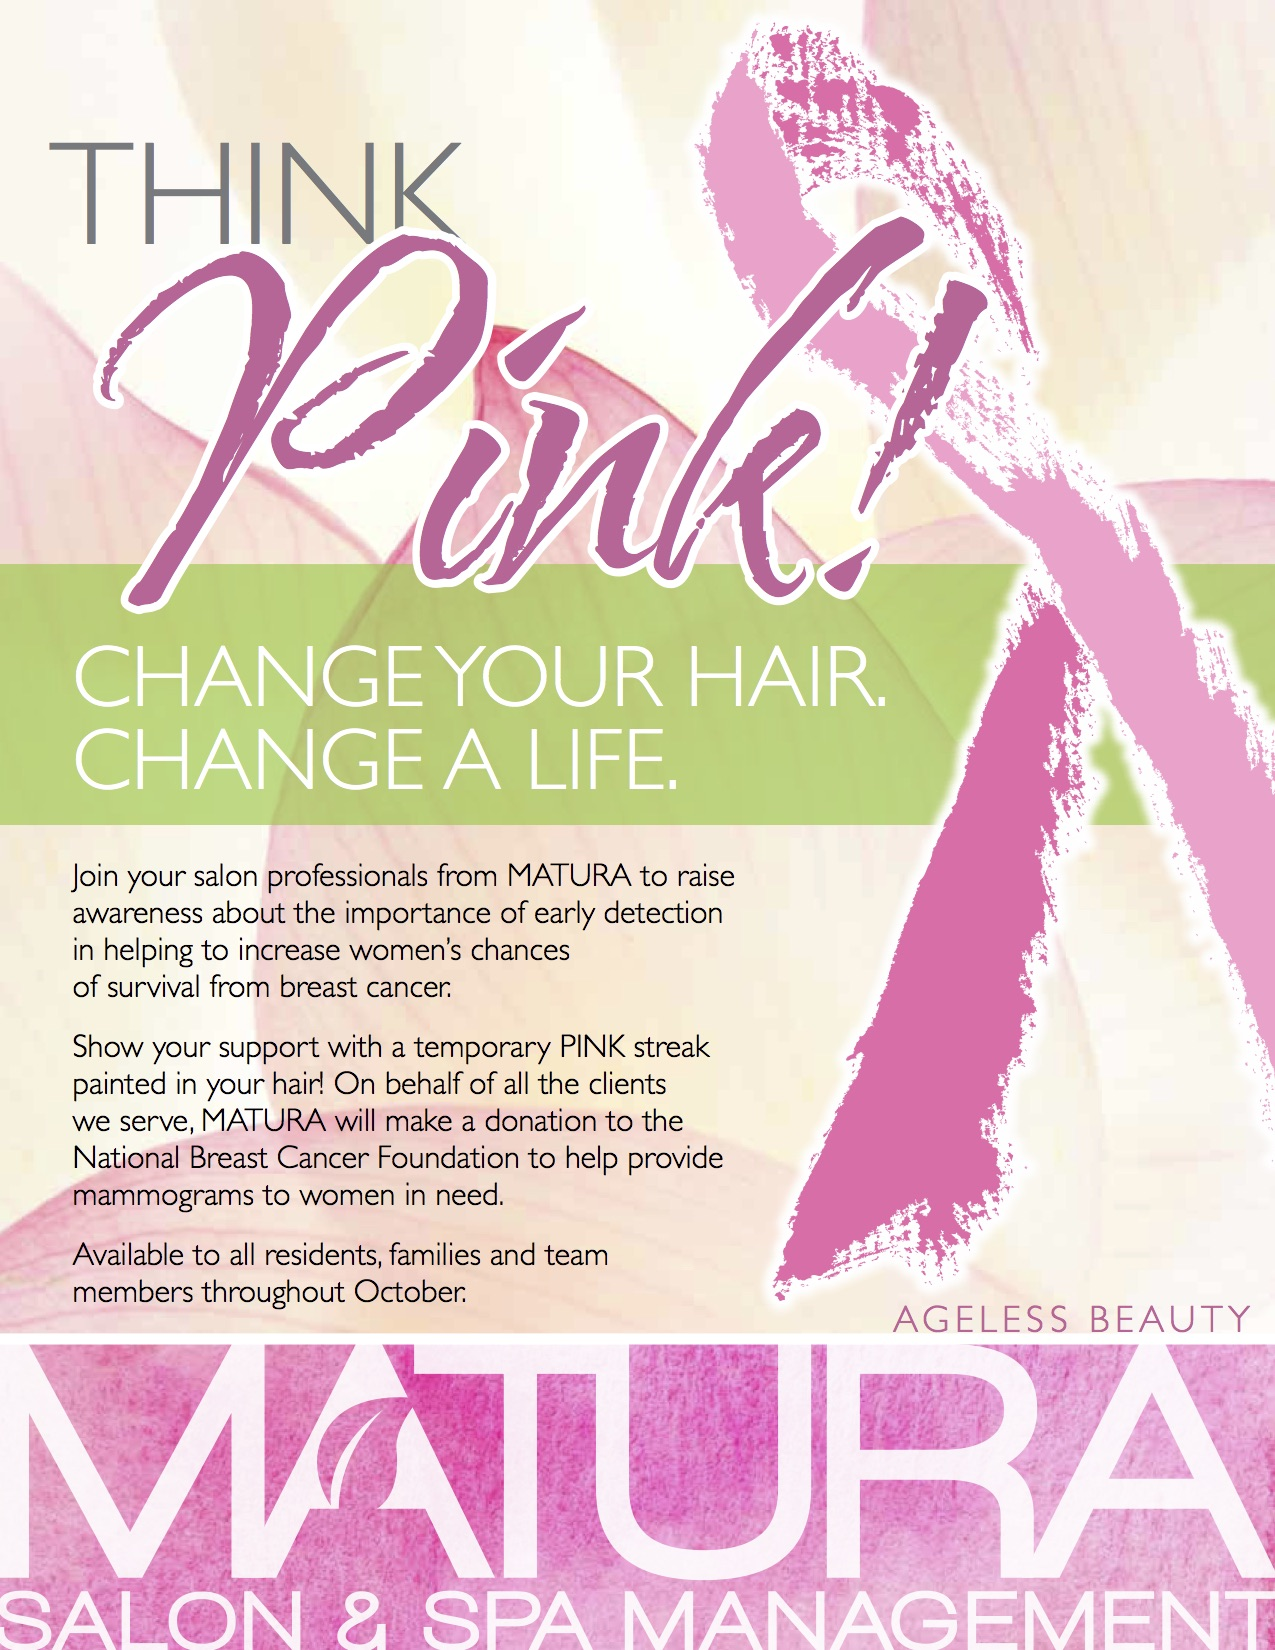 think pink change your hair change a life matura salon spa. Black Bedroom Furniture Sets. Home Design Ideas